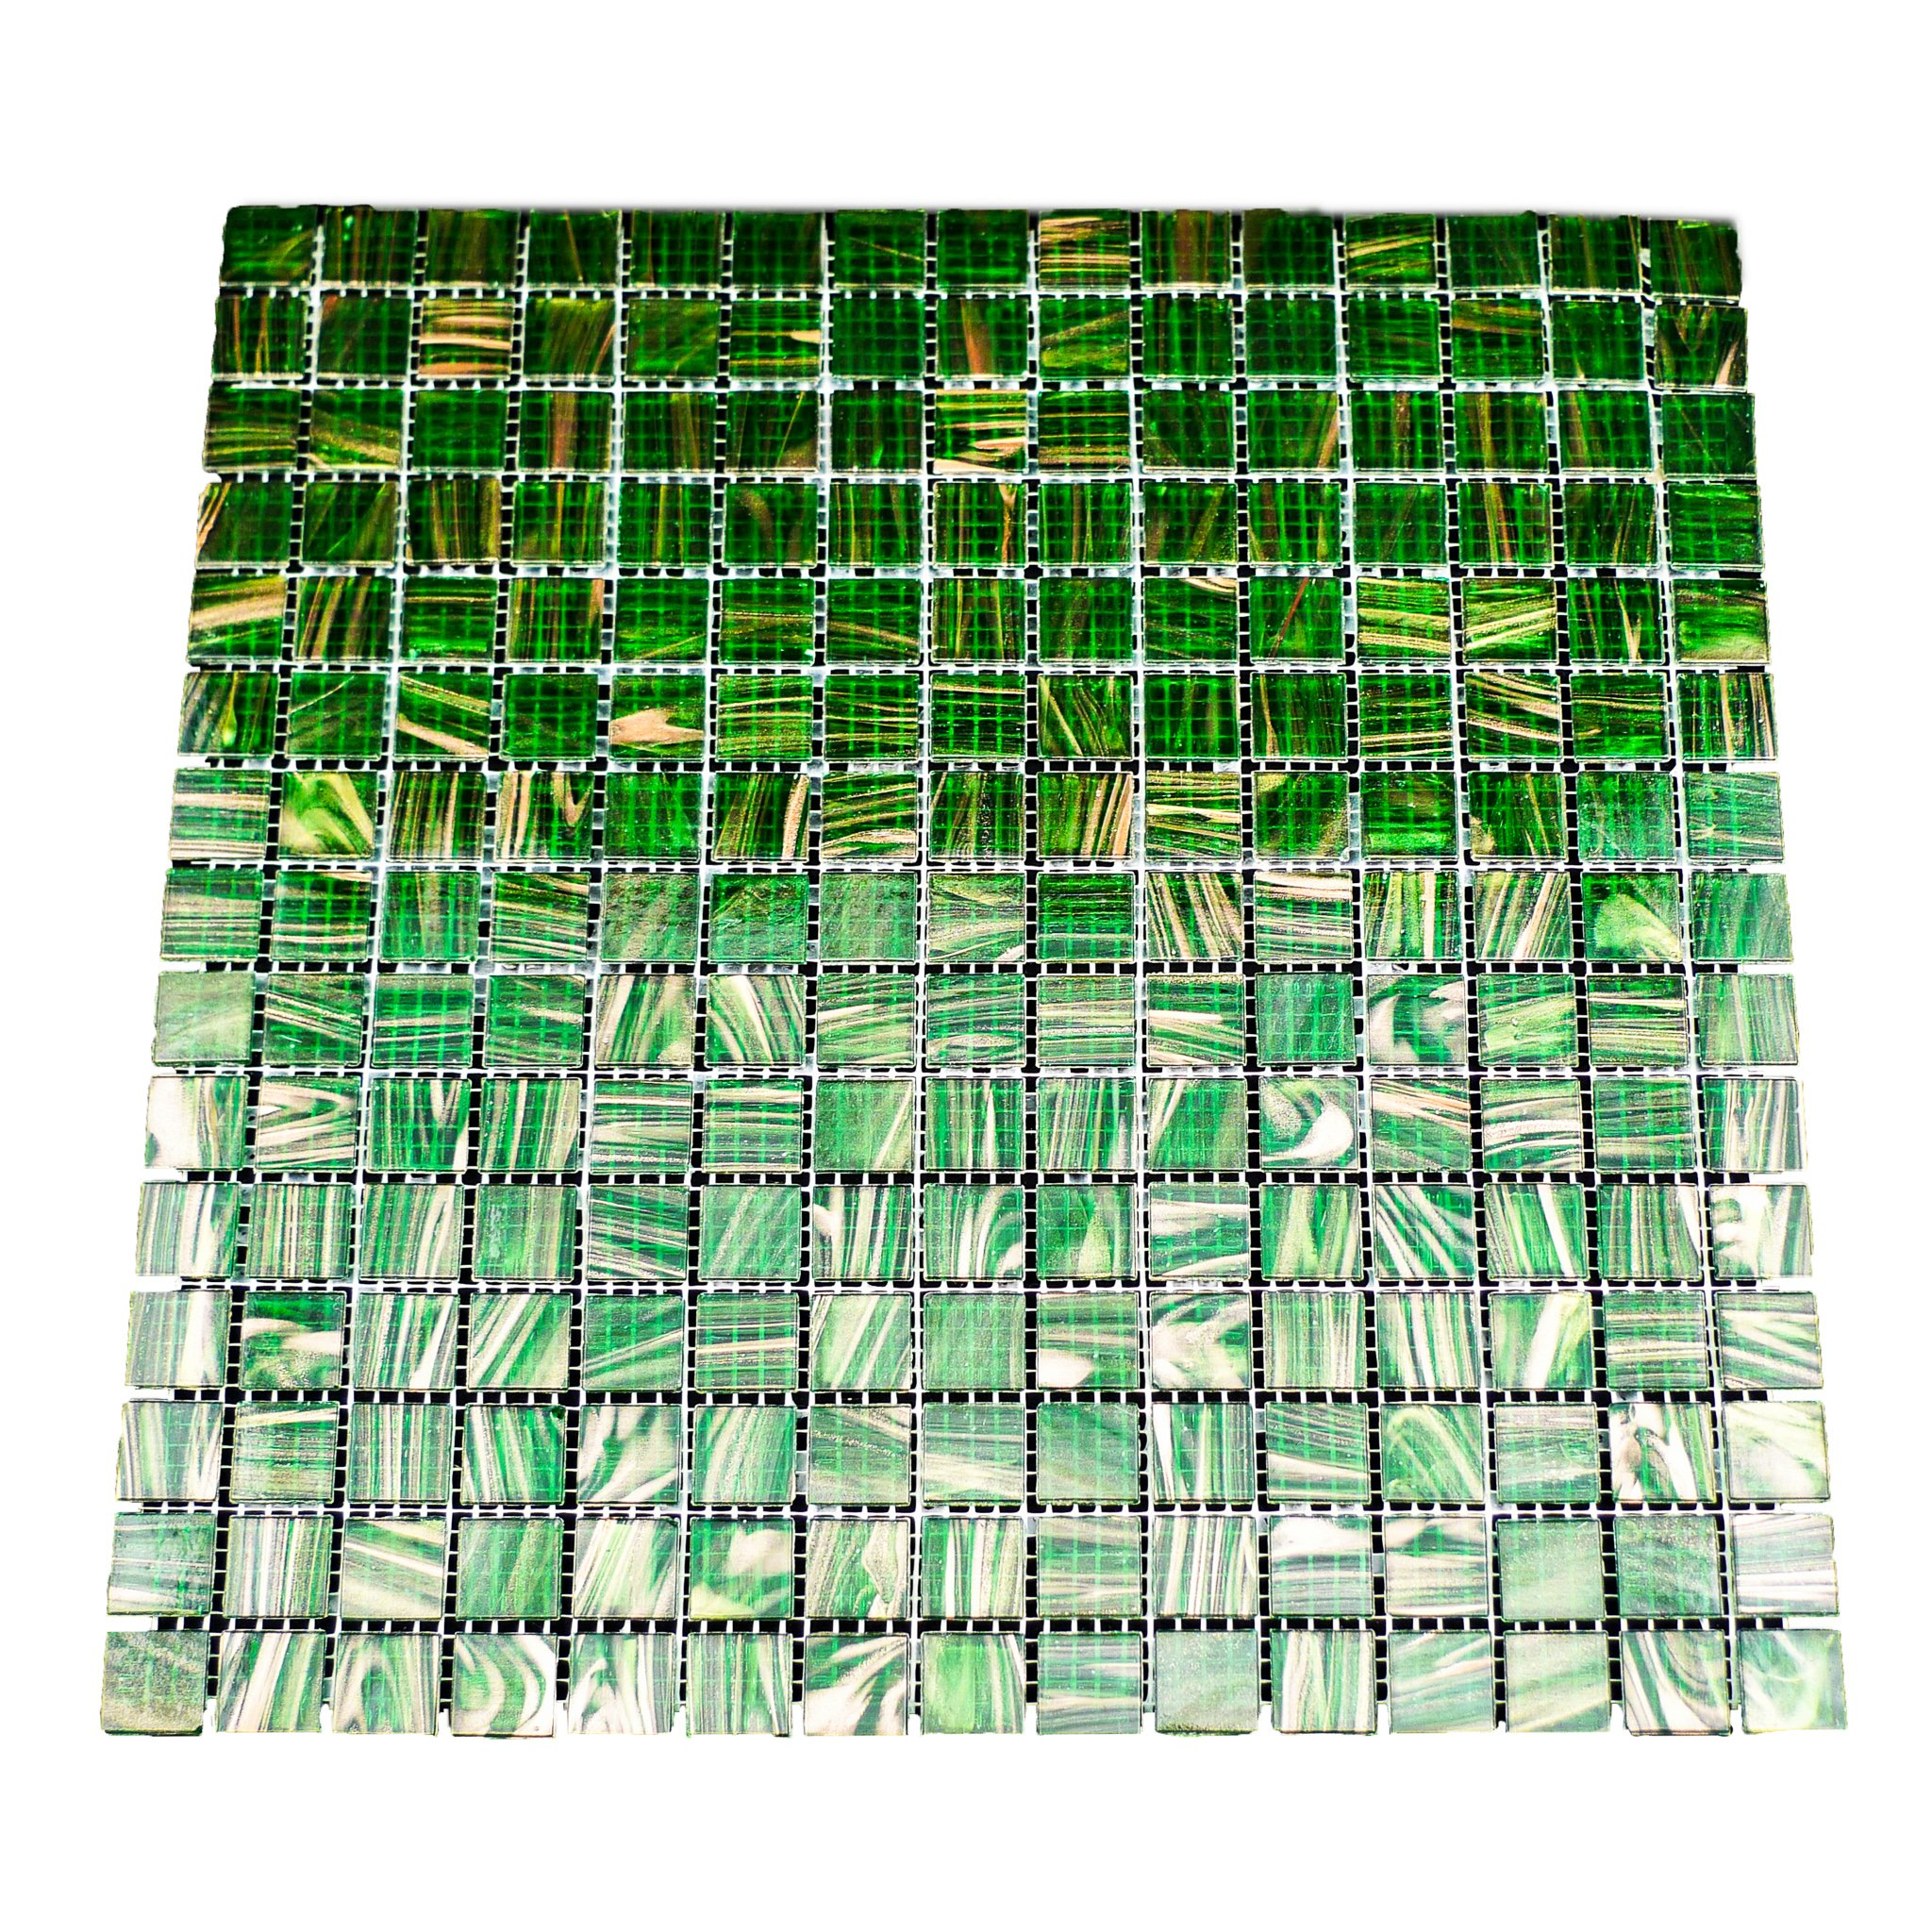 URBN Contemporary Transluscent Green Iridescent Glass Mosaic Tile with Metallic Bronze Highlight for Kitchen and Bath - Single Sheet (13 inches x 13 inches, 1.15 SQ FT) by URBN.tiles